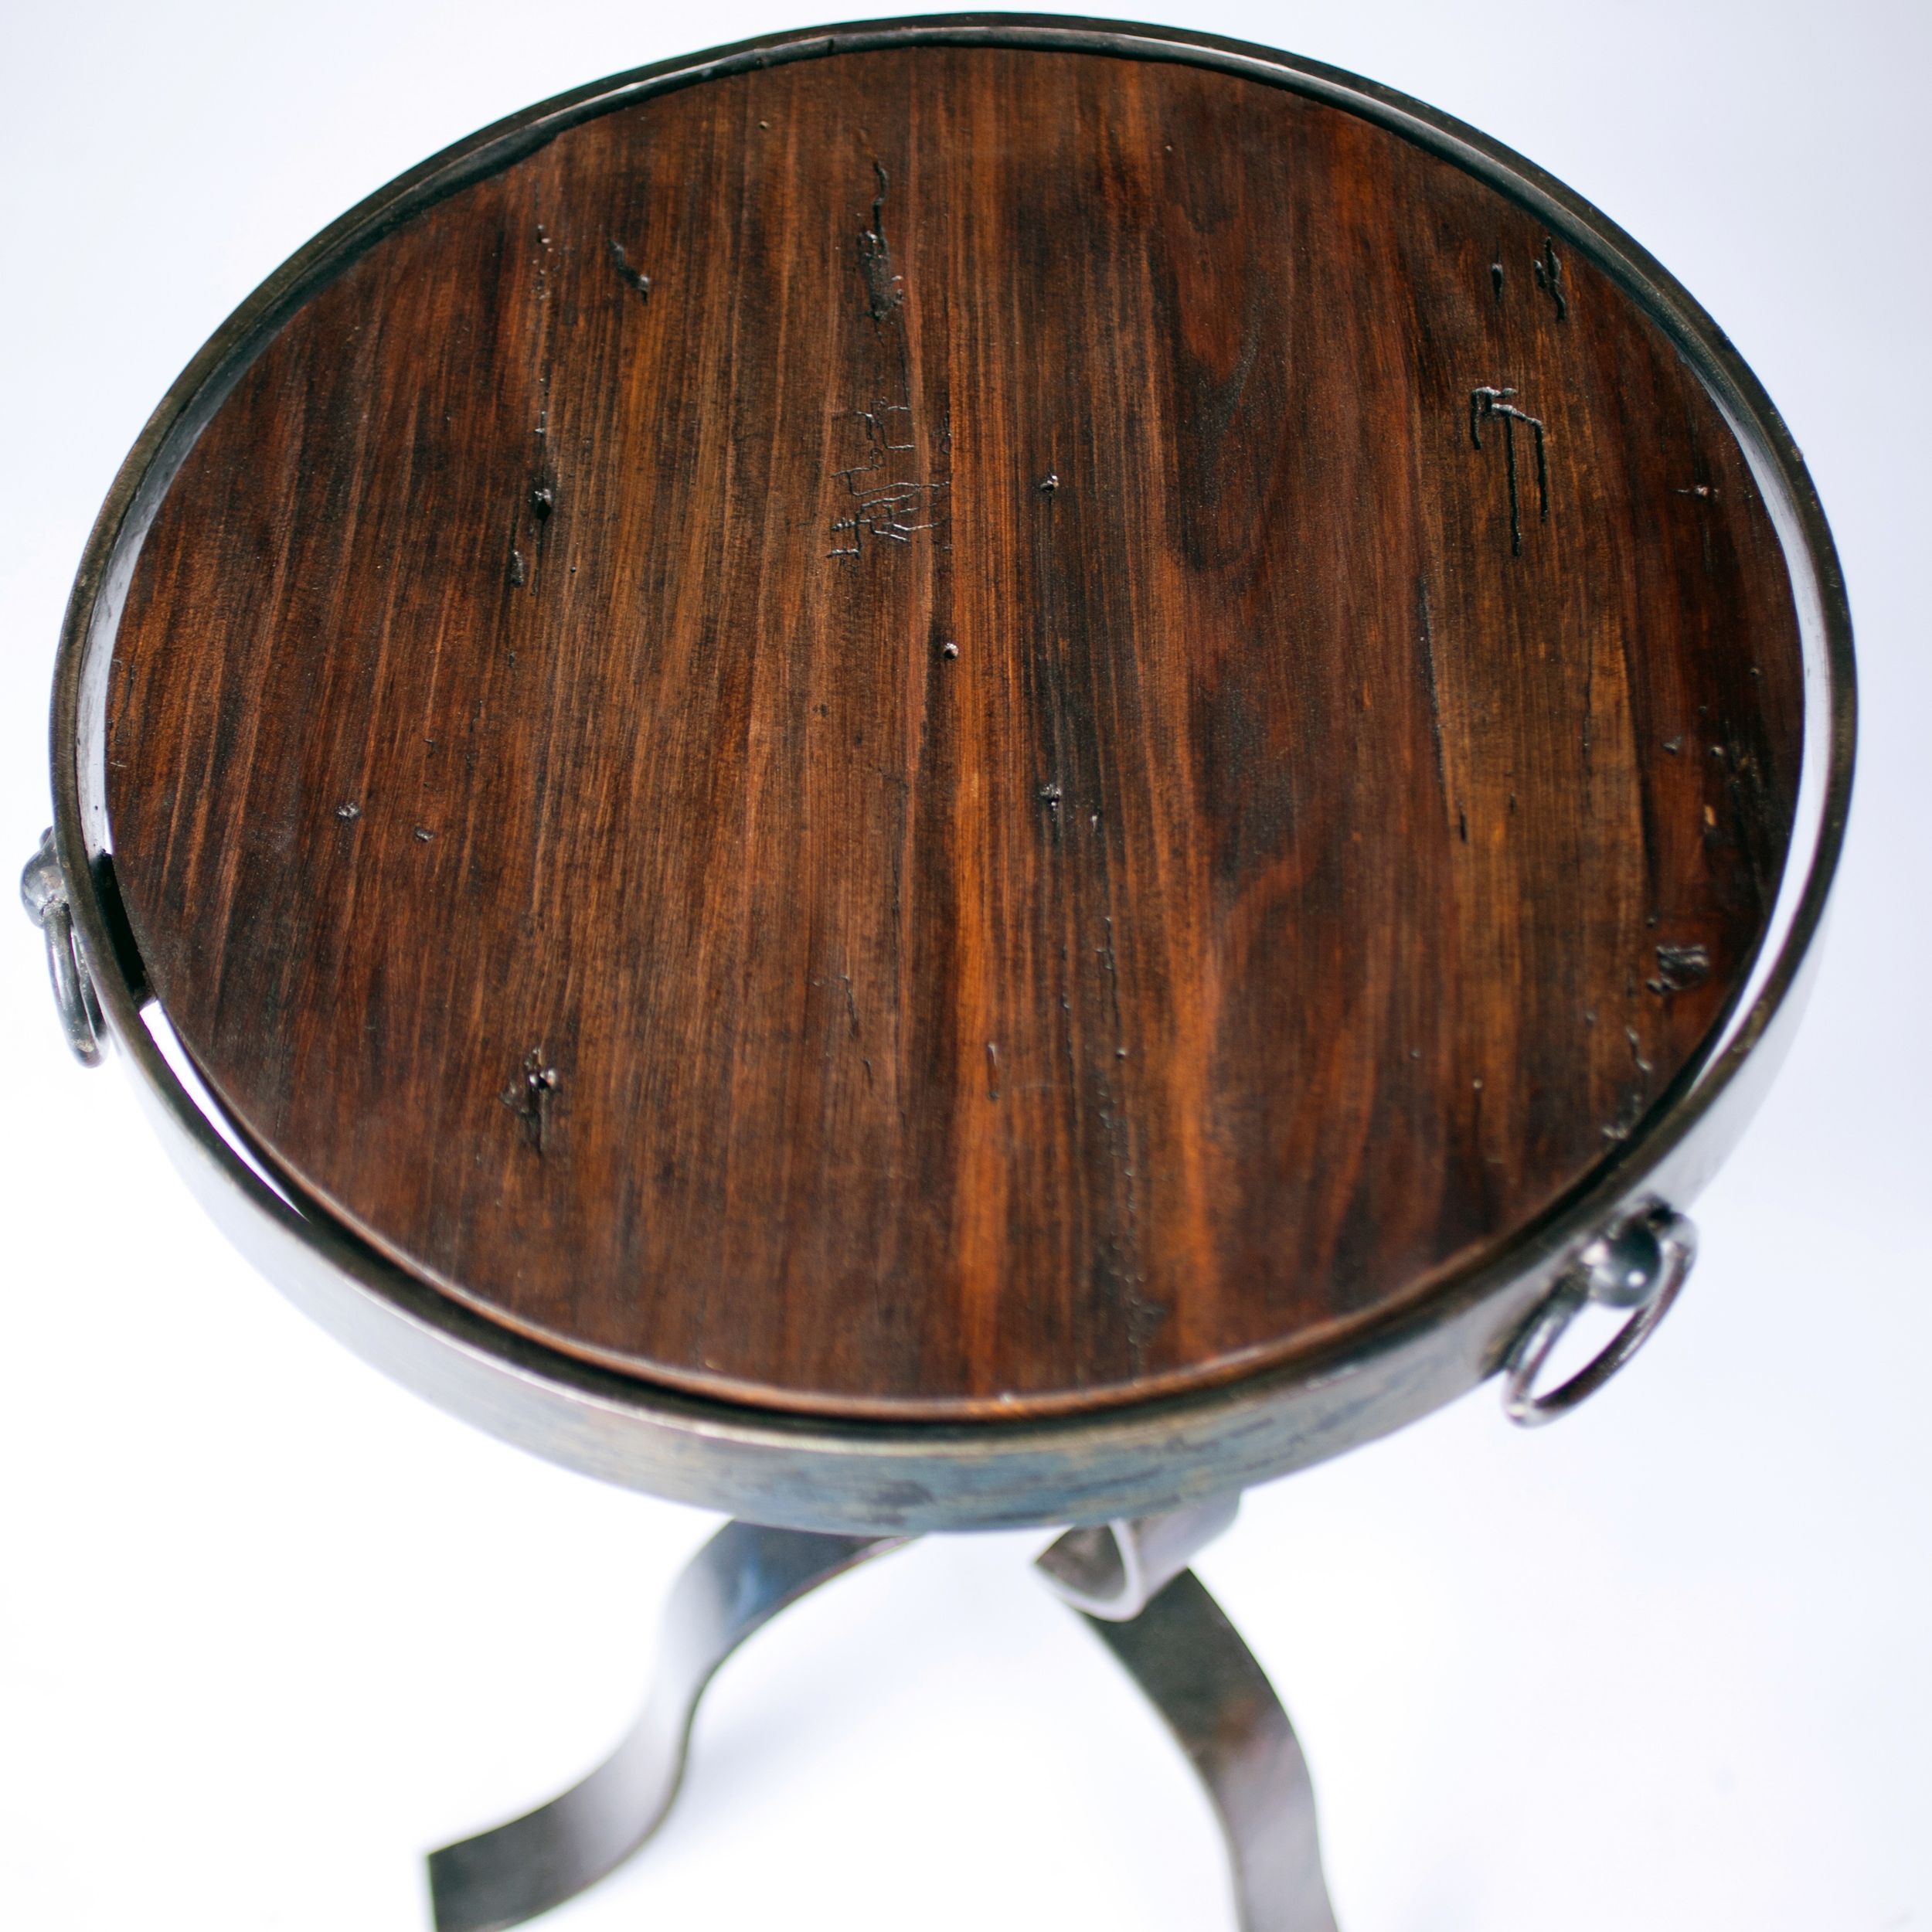 Beautiful Round Wood Table Tops Home Depot And Round Wood Table Tops For  Sale